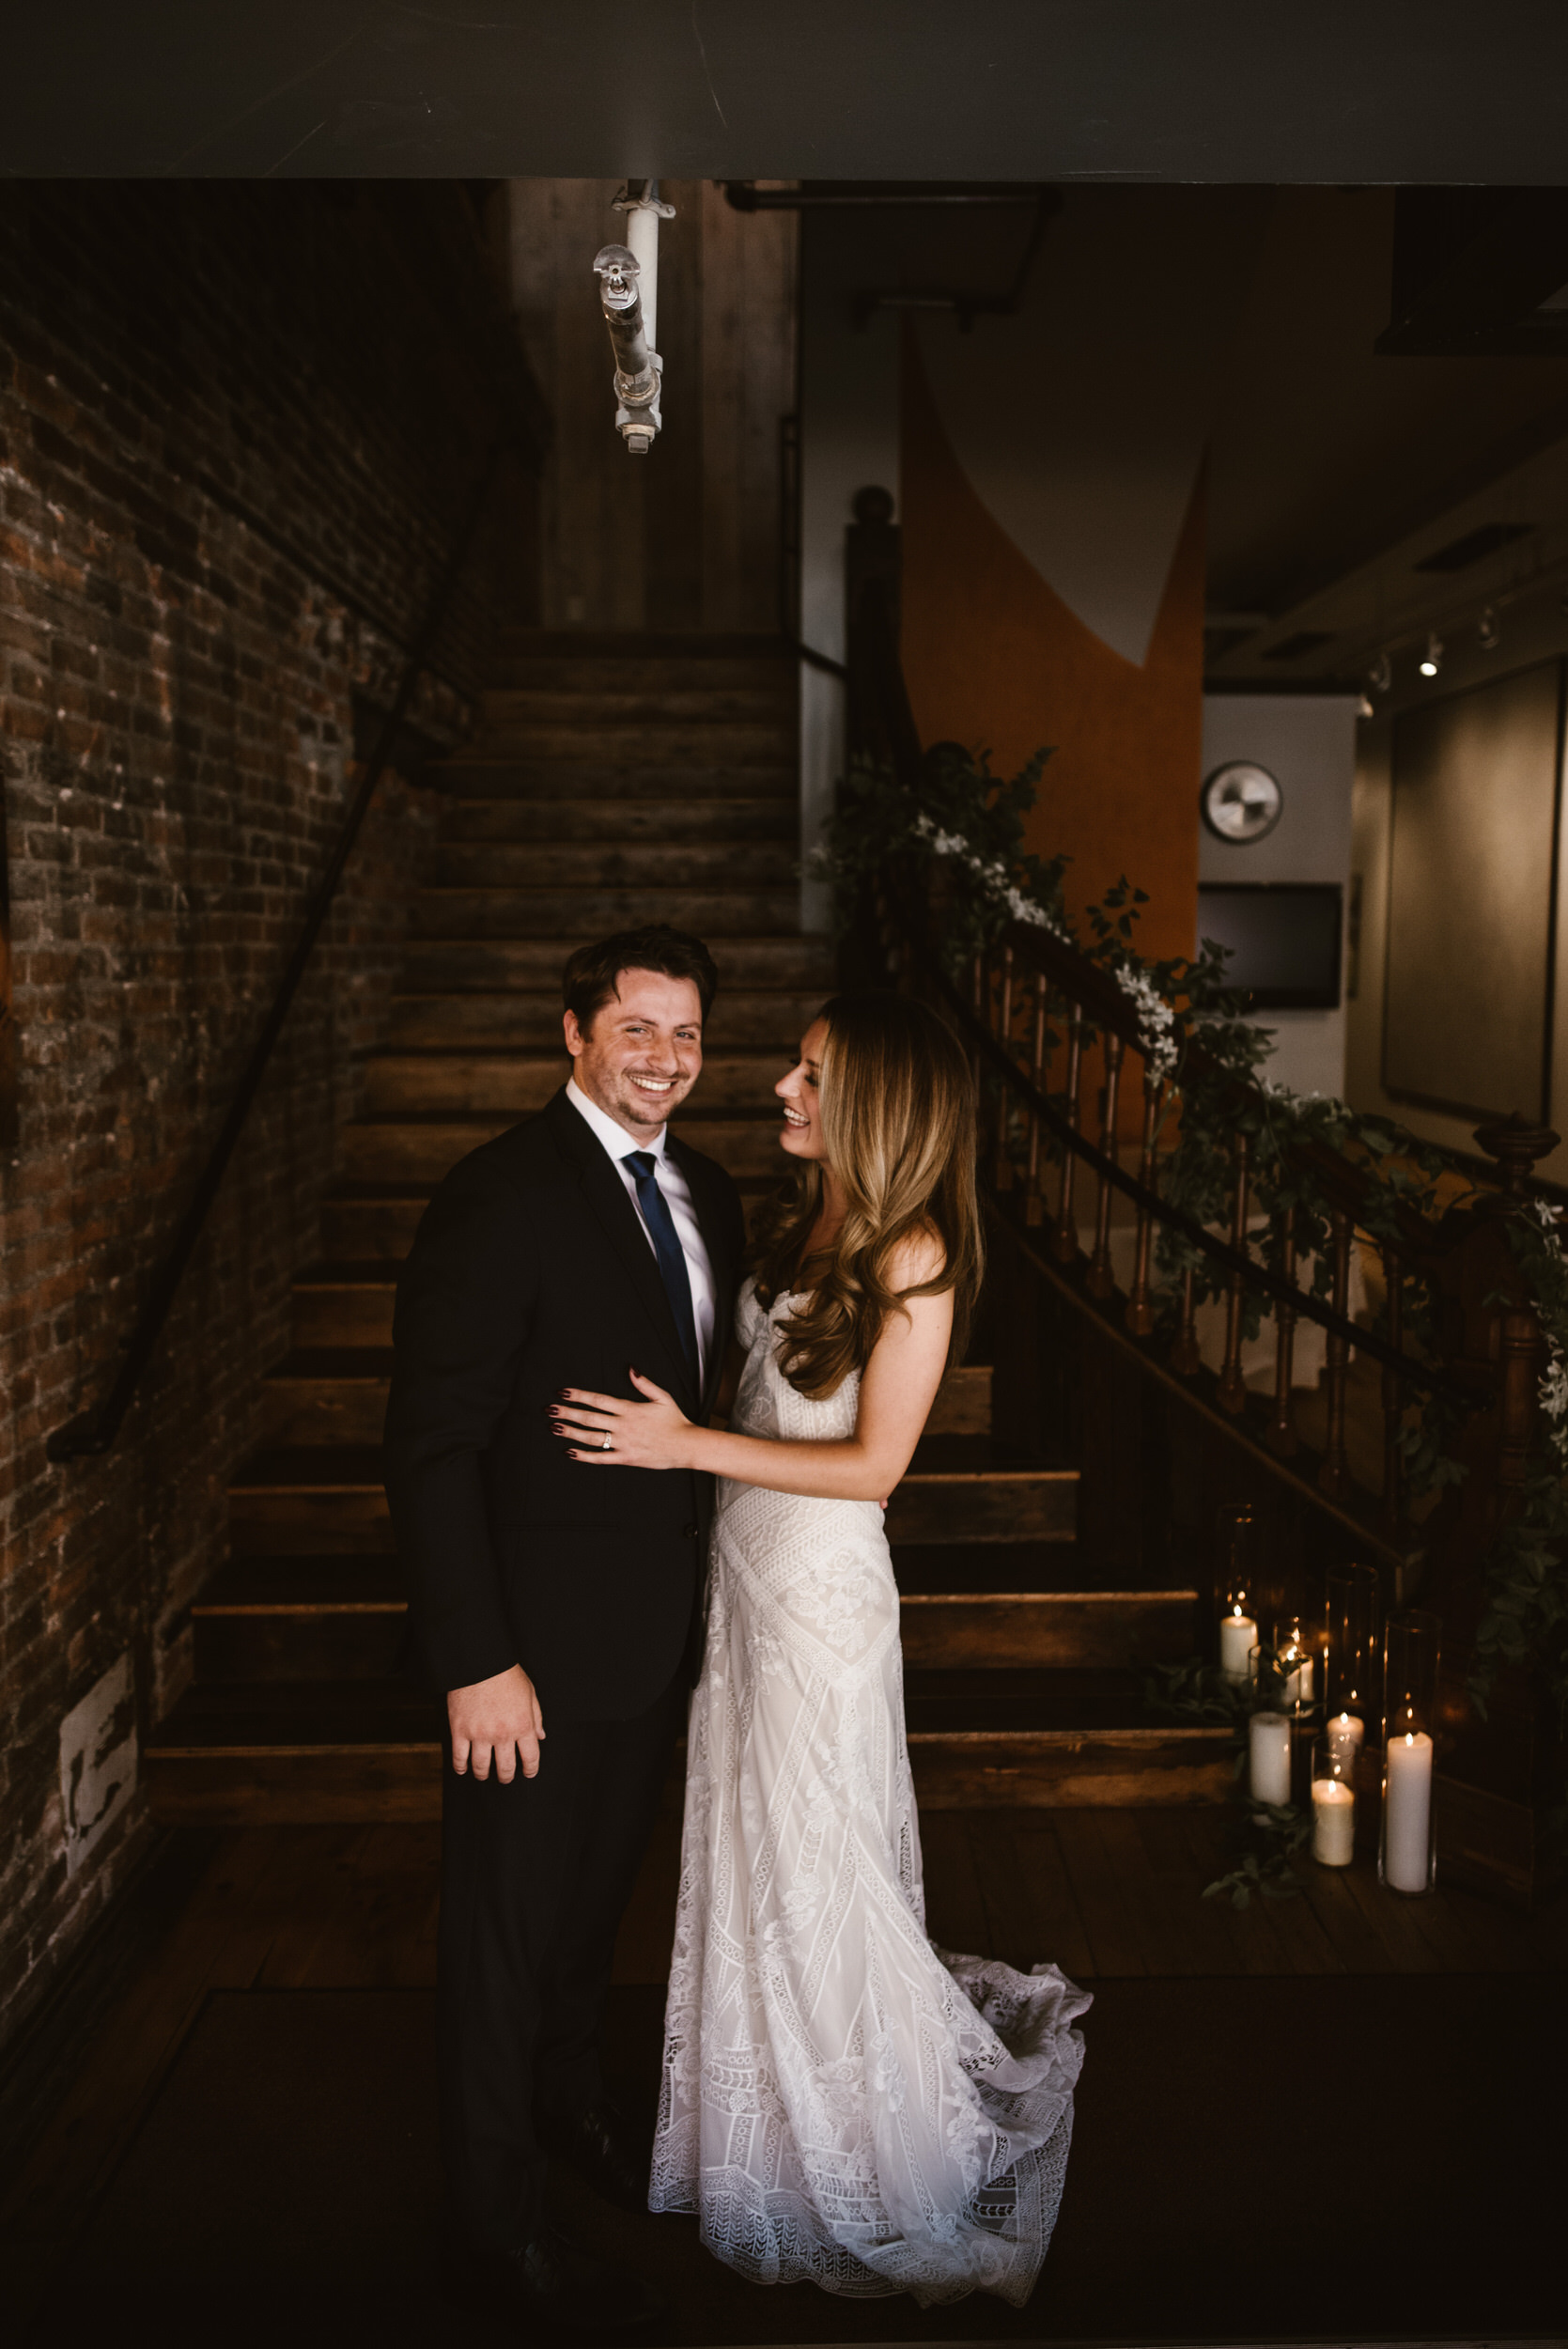 Stillwater-Minnesota-Wedding-Loft-at-Studio-J-Kaylie-Sirek-Photography-12.jpg